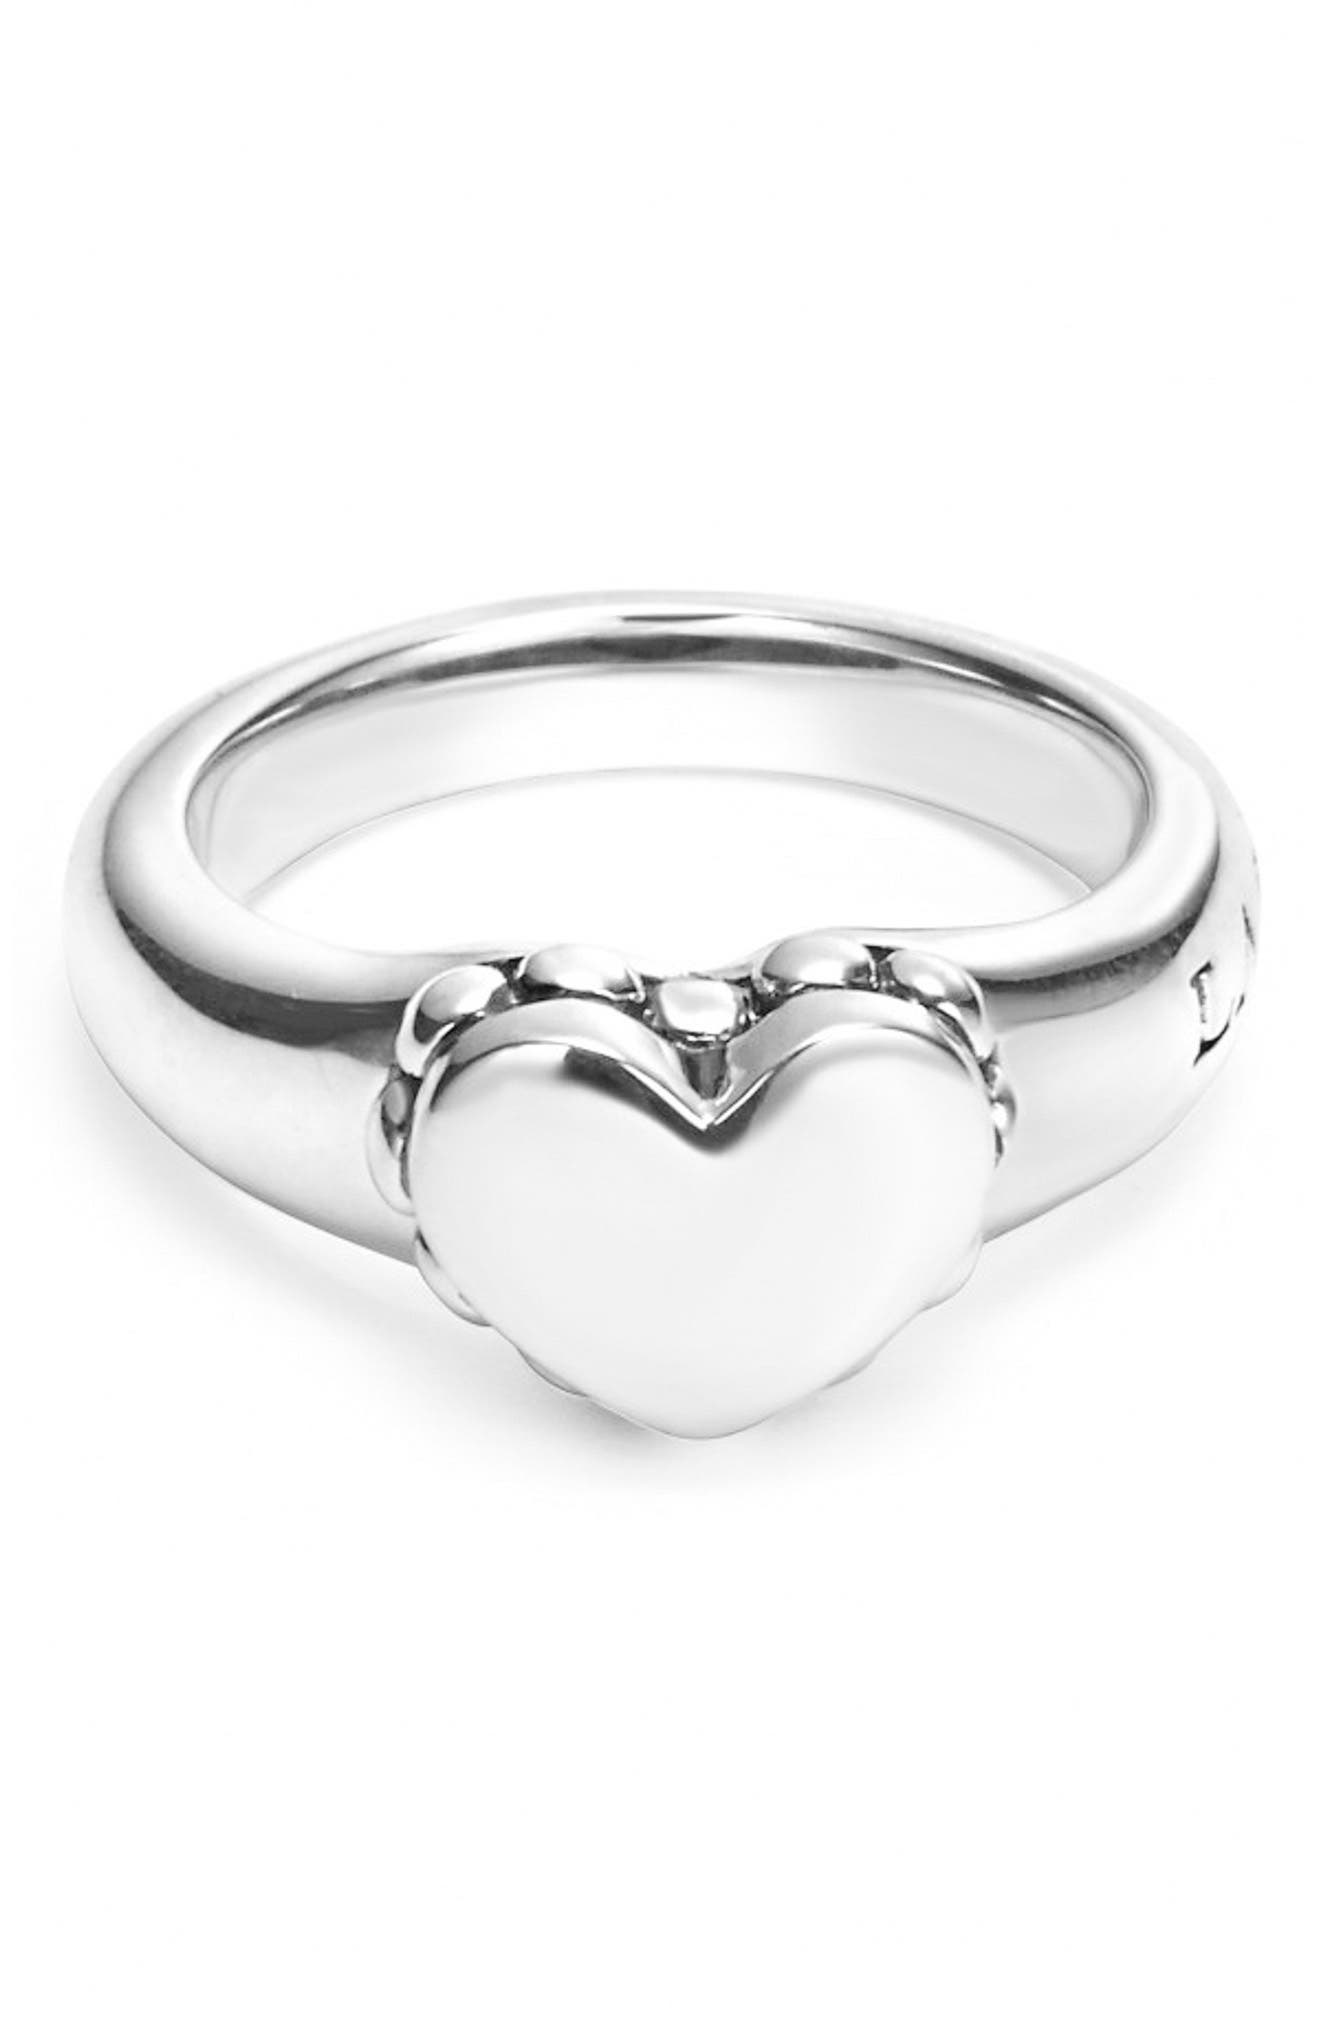 'Beloved' Small Heart Ring,                             Alternate thumbnail 4, color,                             040